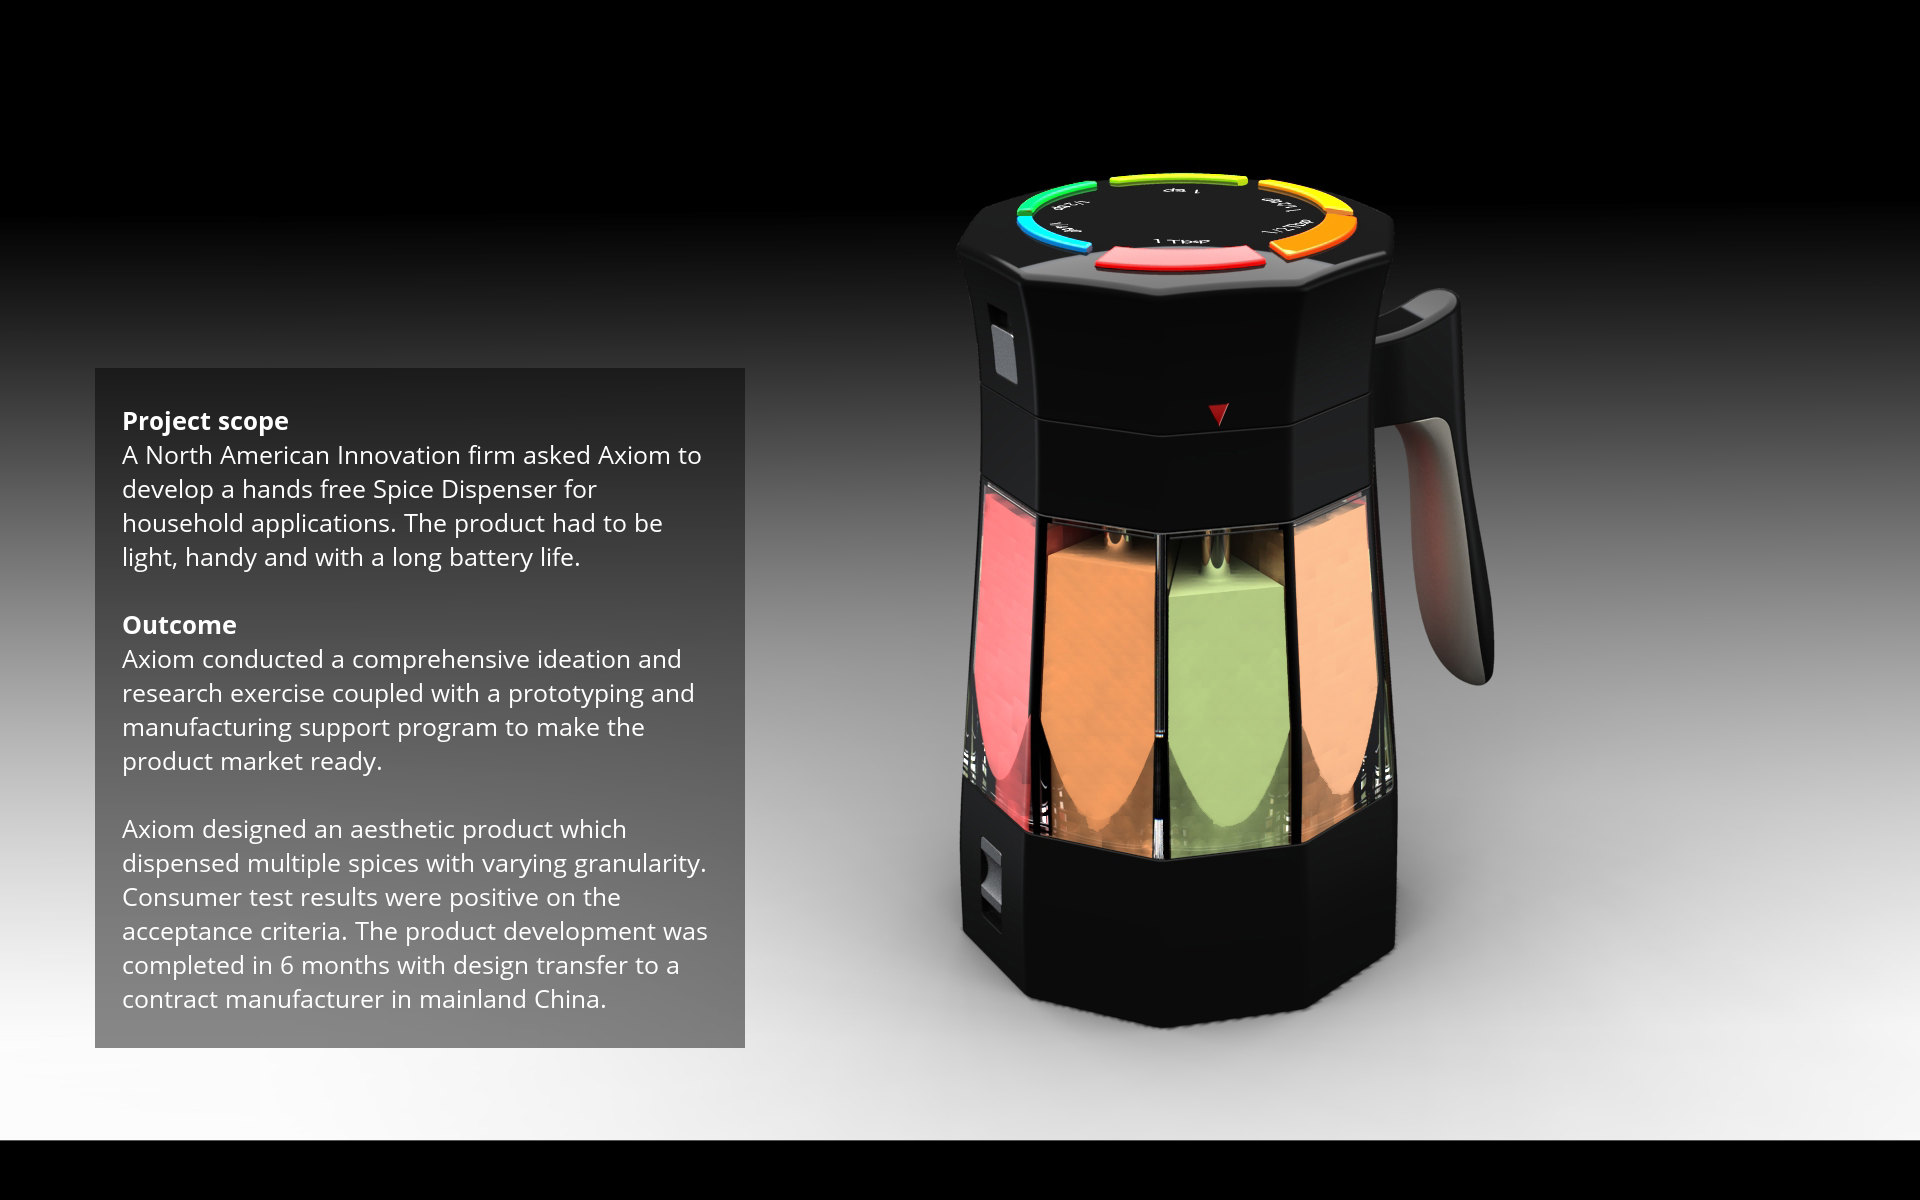 Axiom product design - Spice dispenser